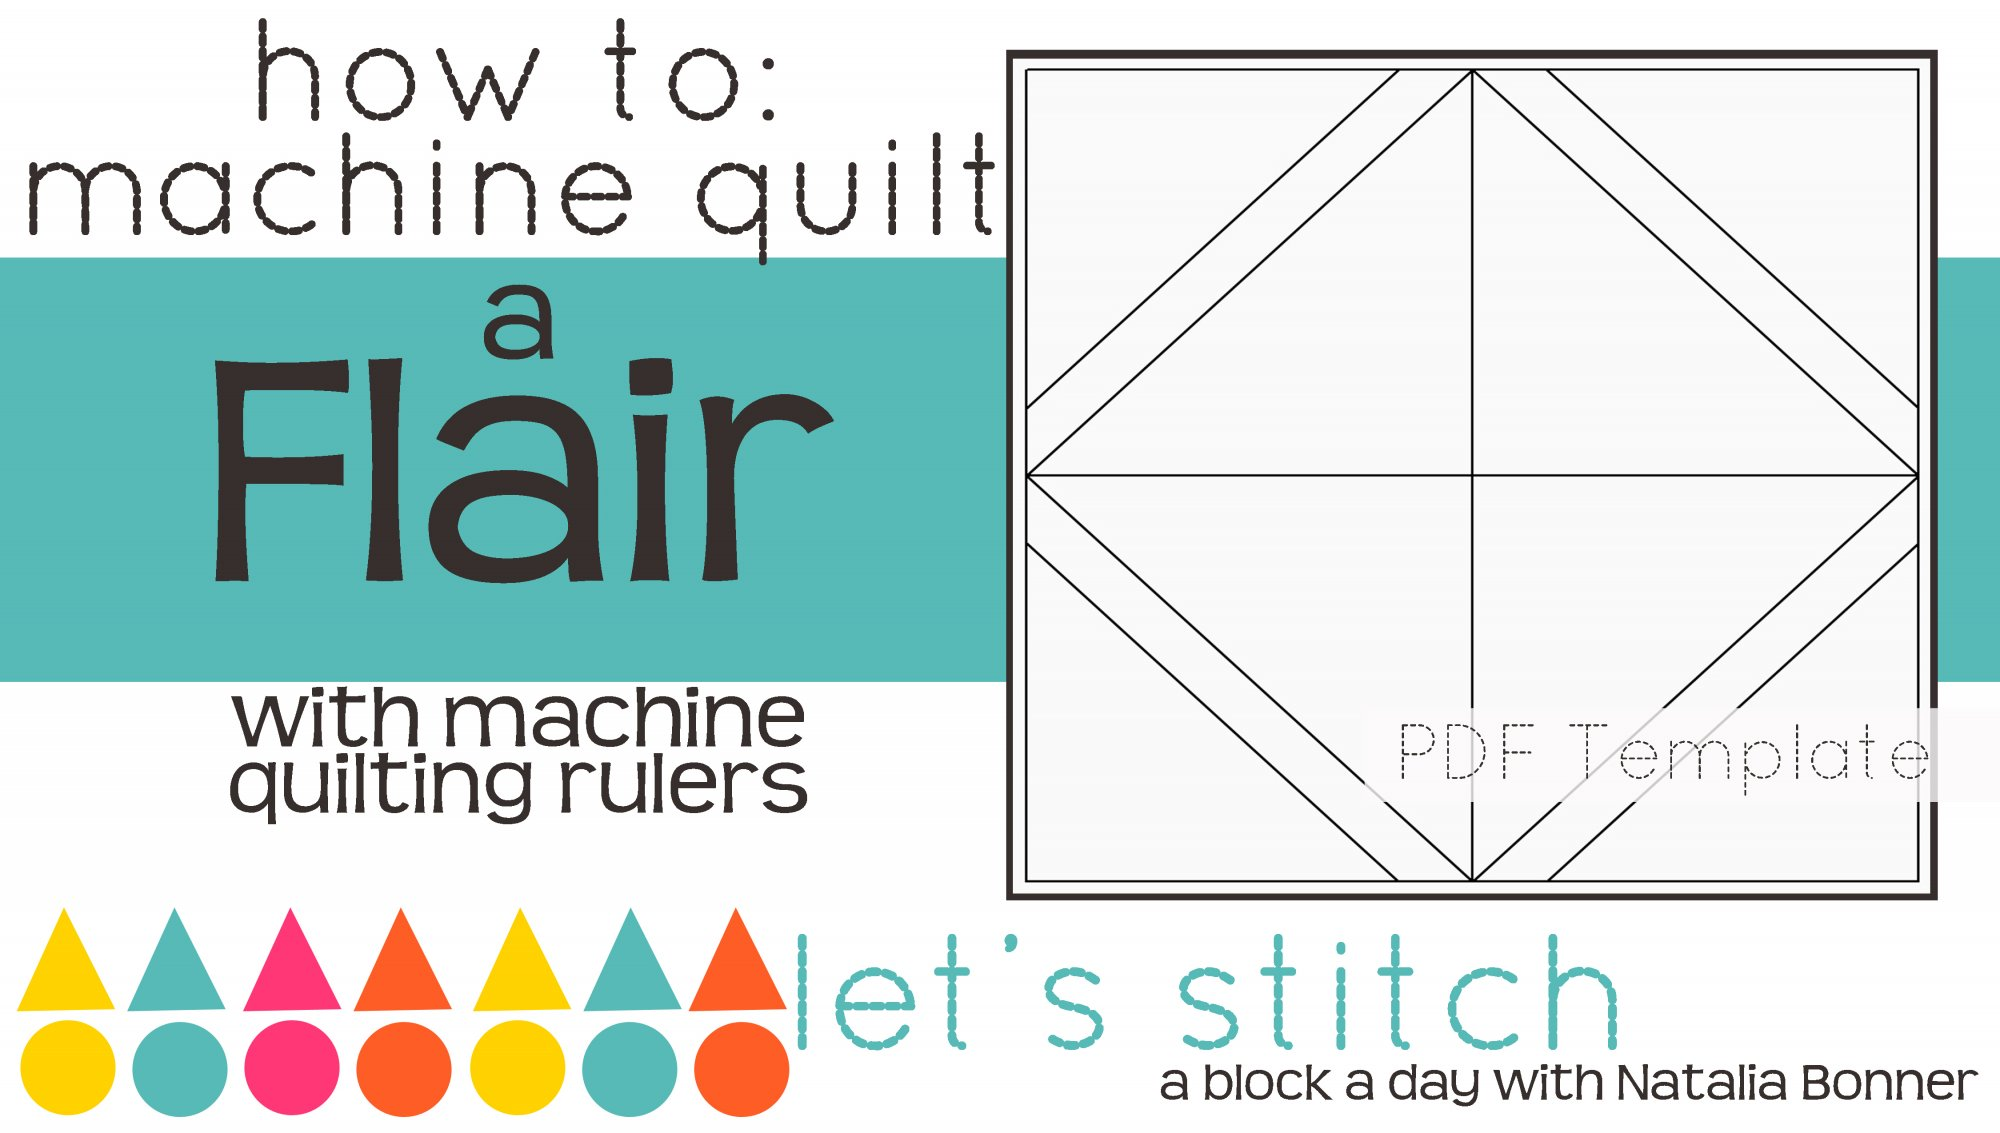 Let's Stitch - A Block a Day With Natalia Bonner - PDF - Flair